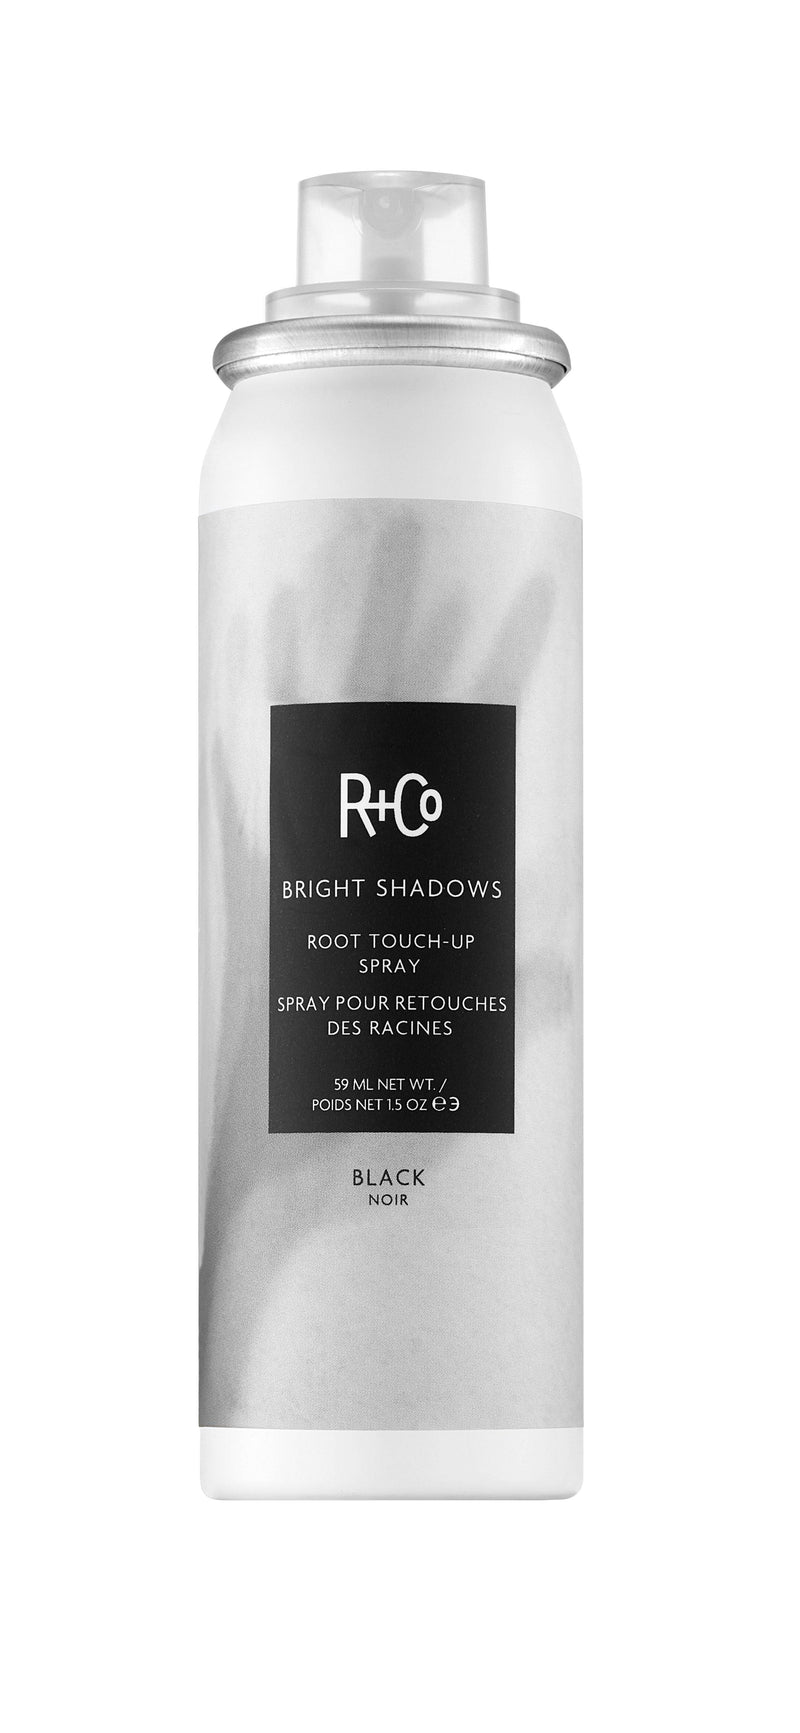 Bright Shadows Root Touch-Up Spray - Bristol Hairdressing